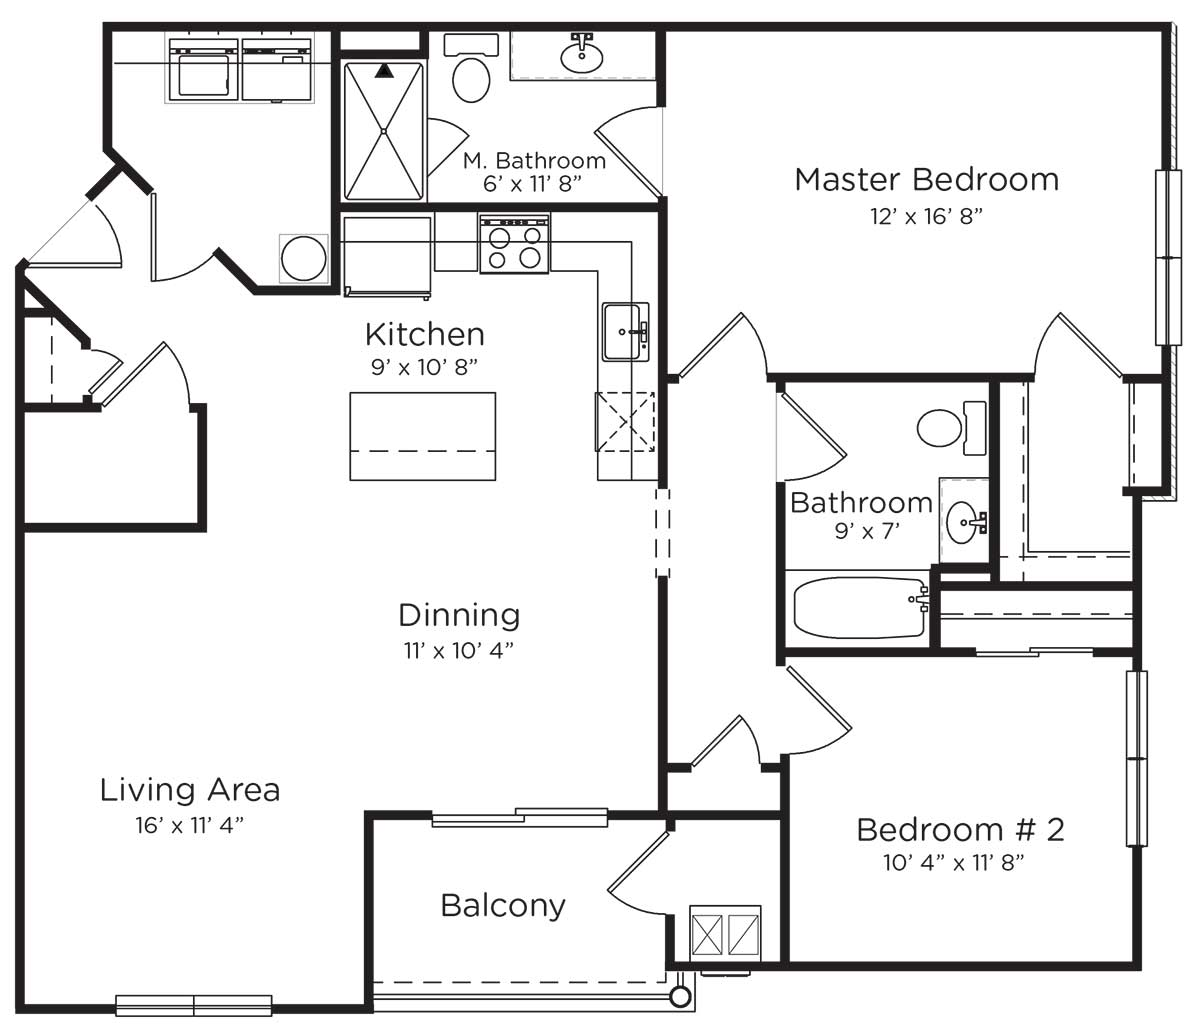 Master Bedroom And Bath Floor Plans on ikea house plants